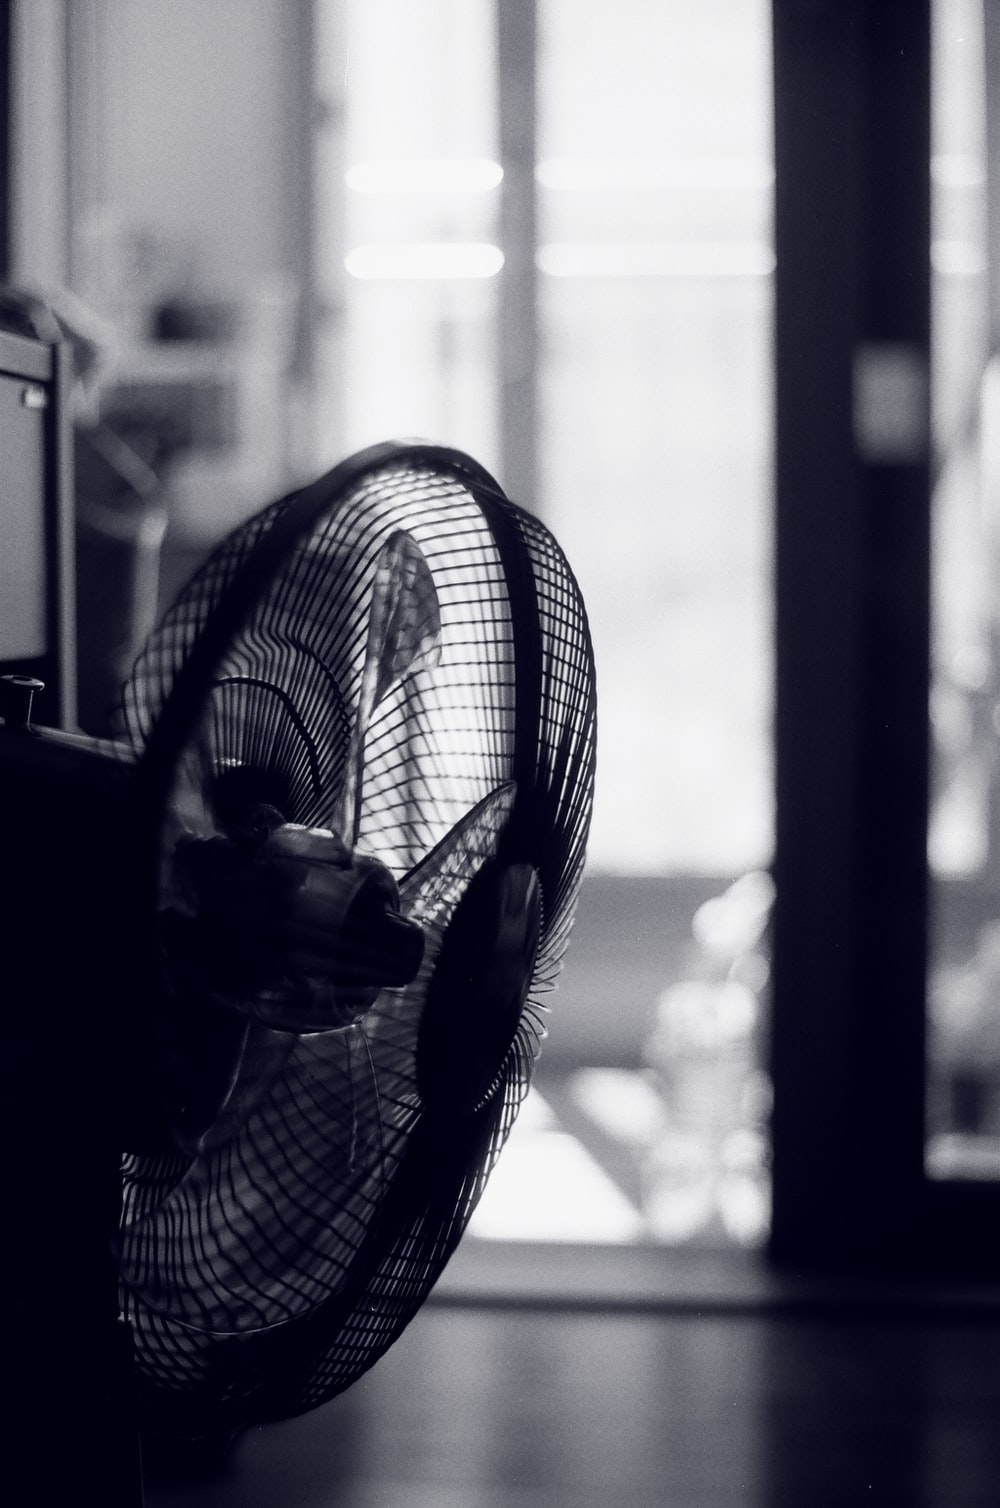 black and white photo of pedestal fan